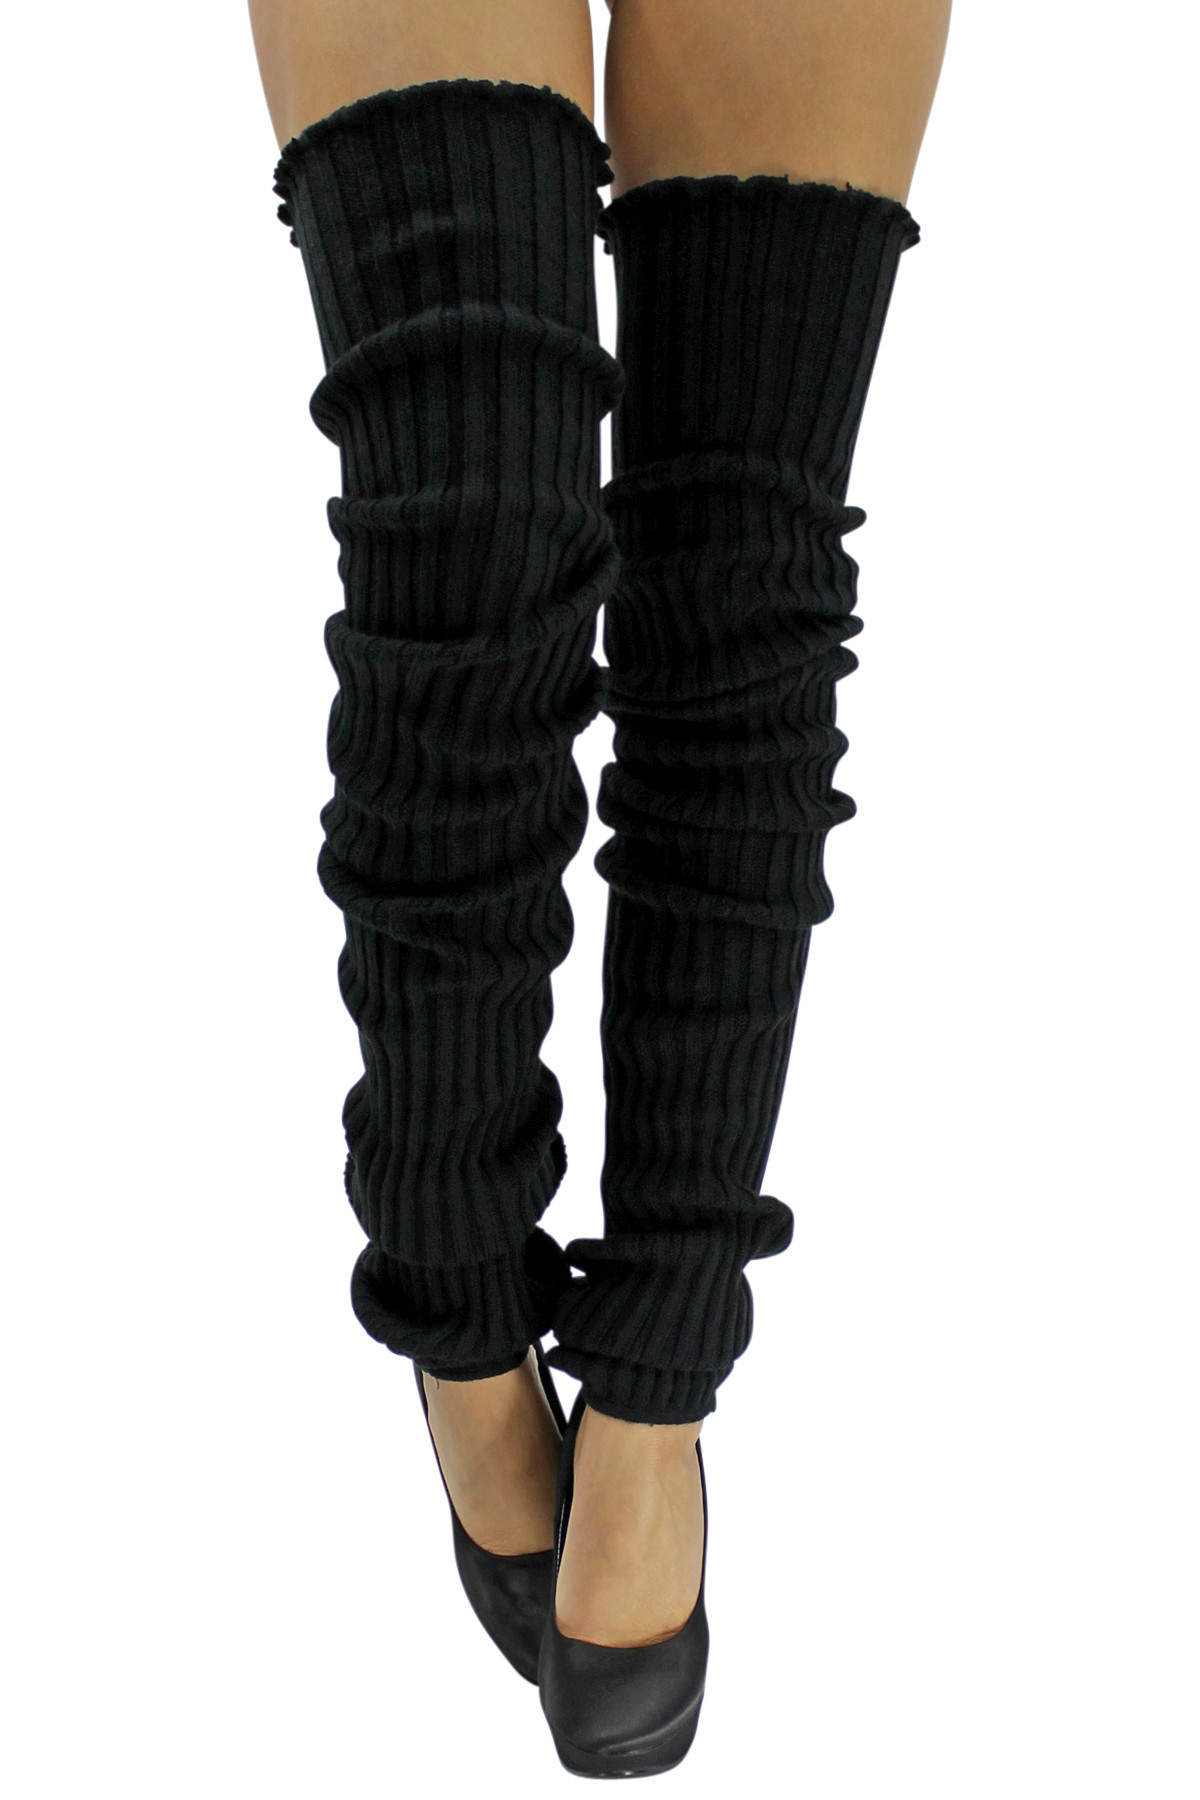 extra-long-thick-black-leg-warmers-l00359_1_rs.jpeg